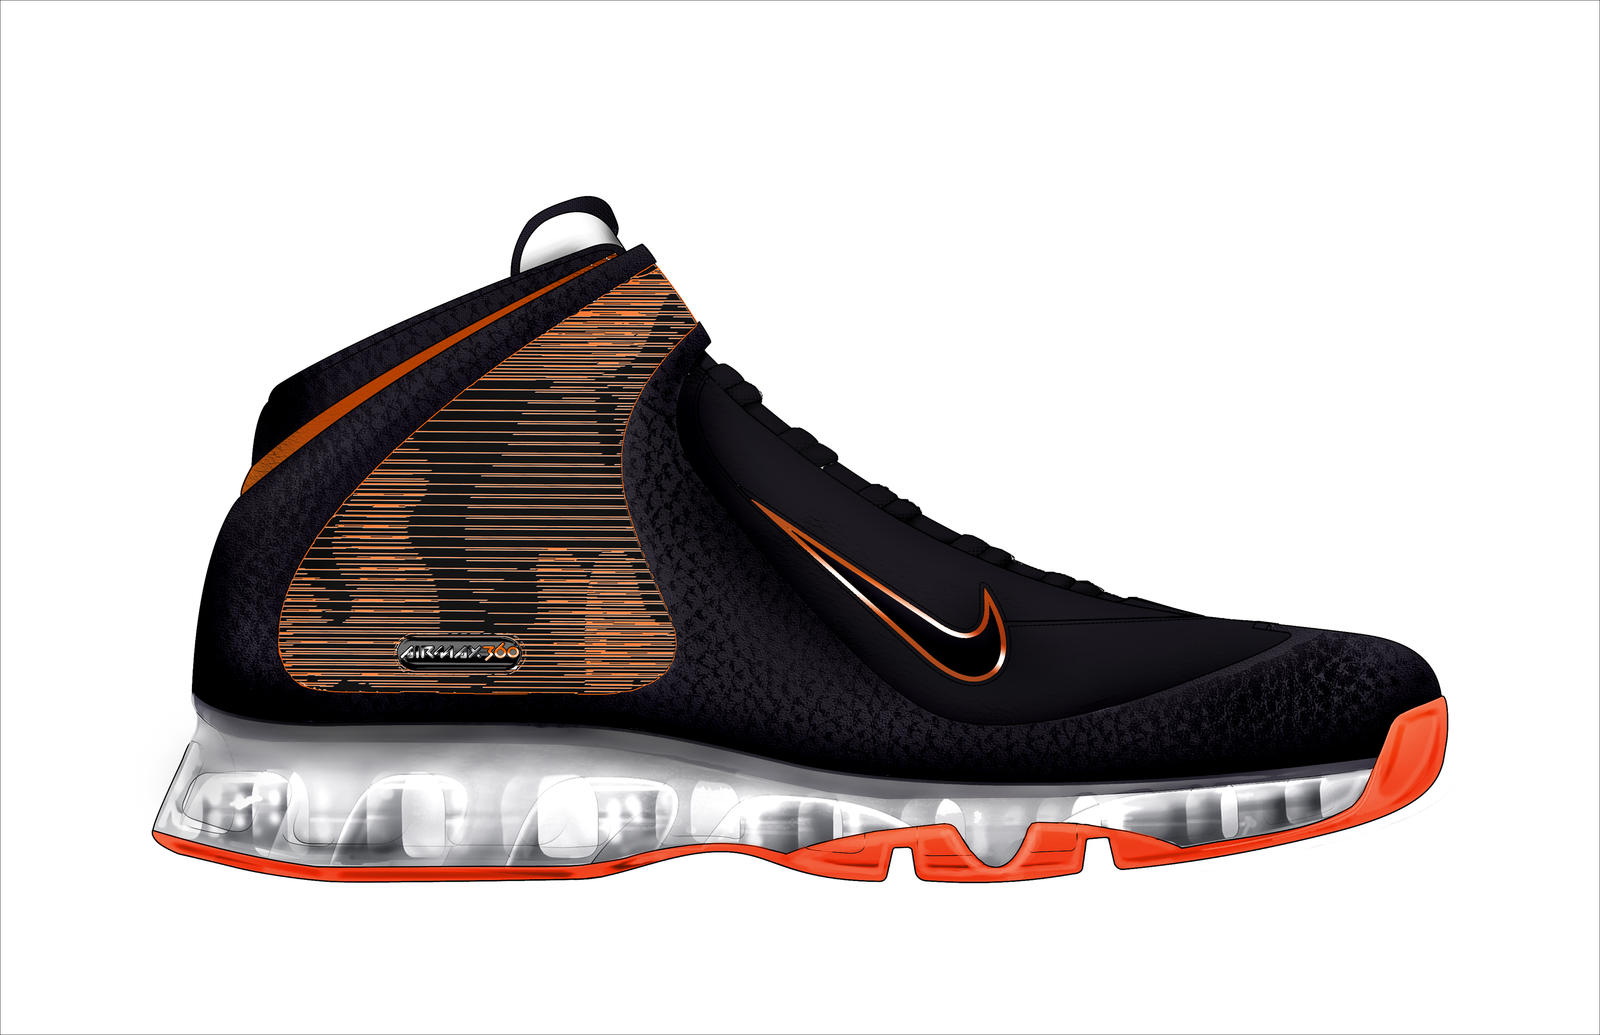 Nike Basketball Shoes Amazon Uk